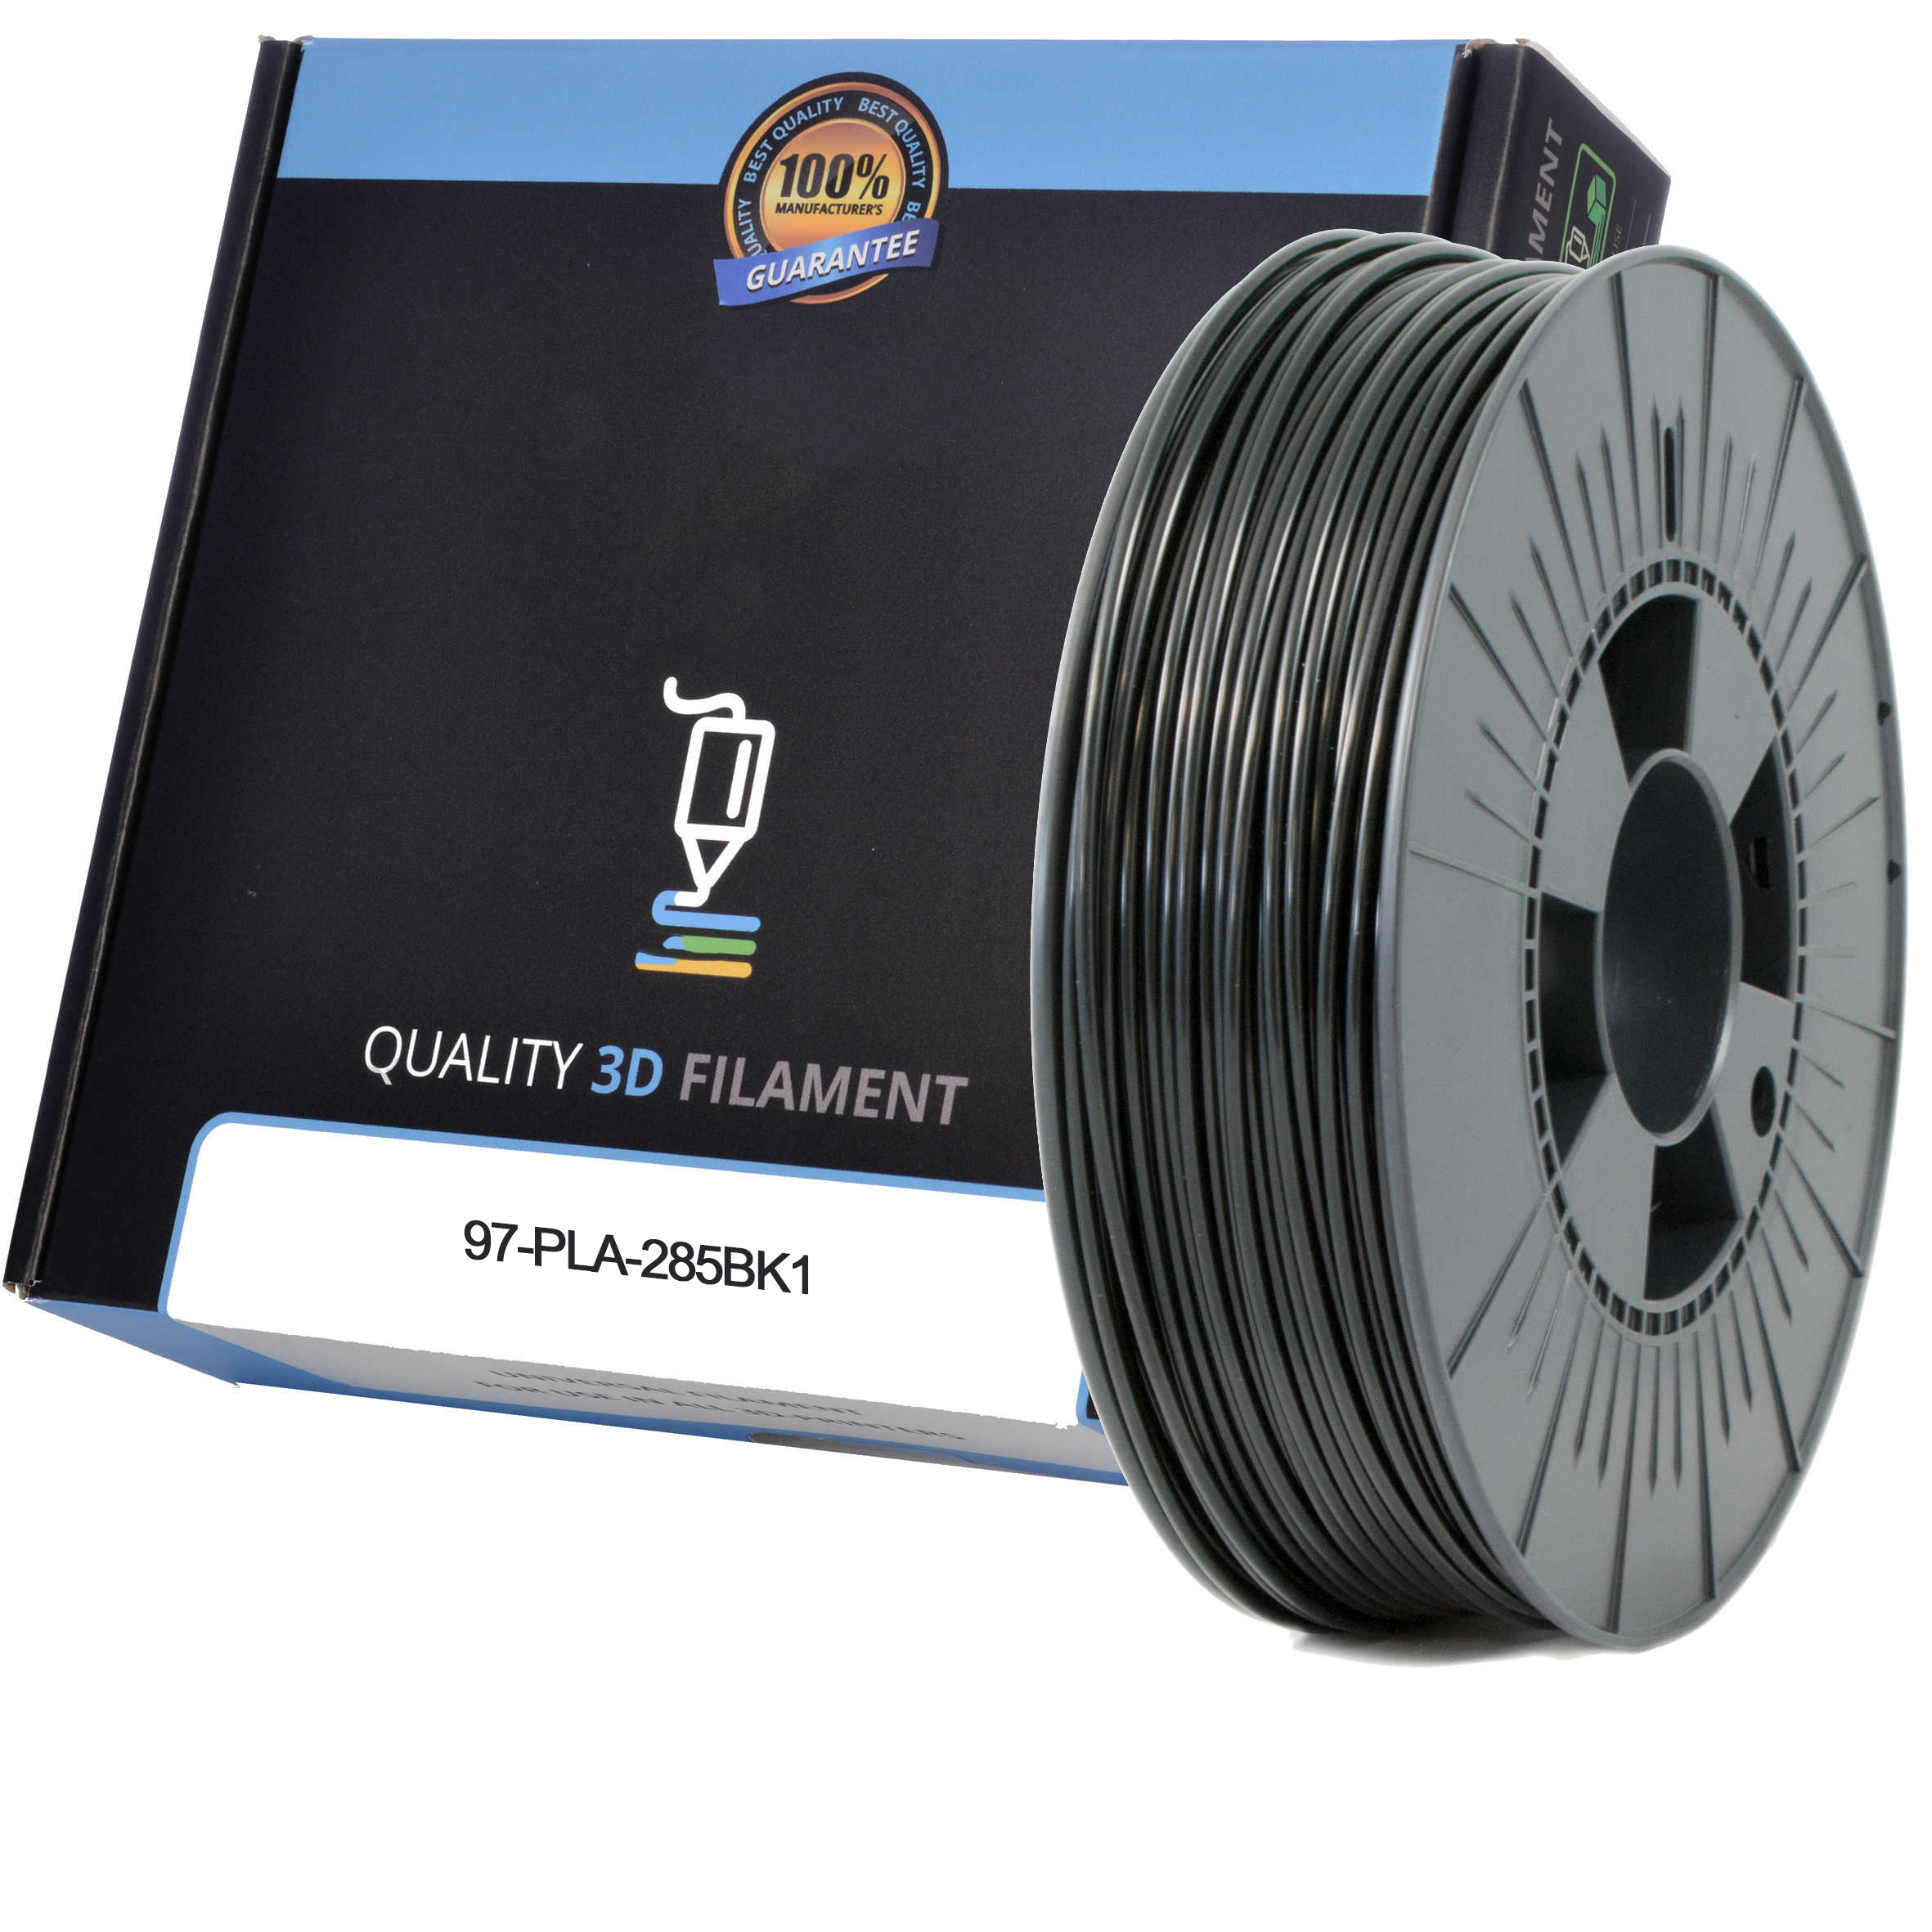 Premium Compatible PLA 2.85mm Black 1kg 3D Filament (97-PLA-285BK1)